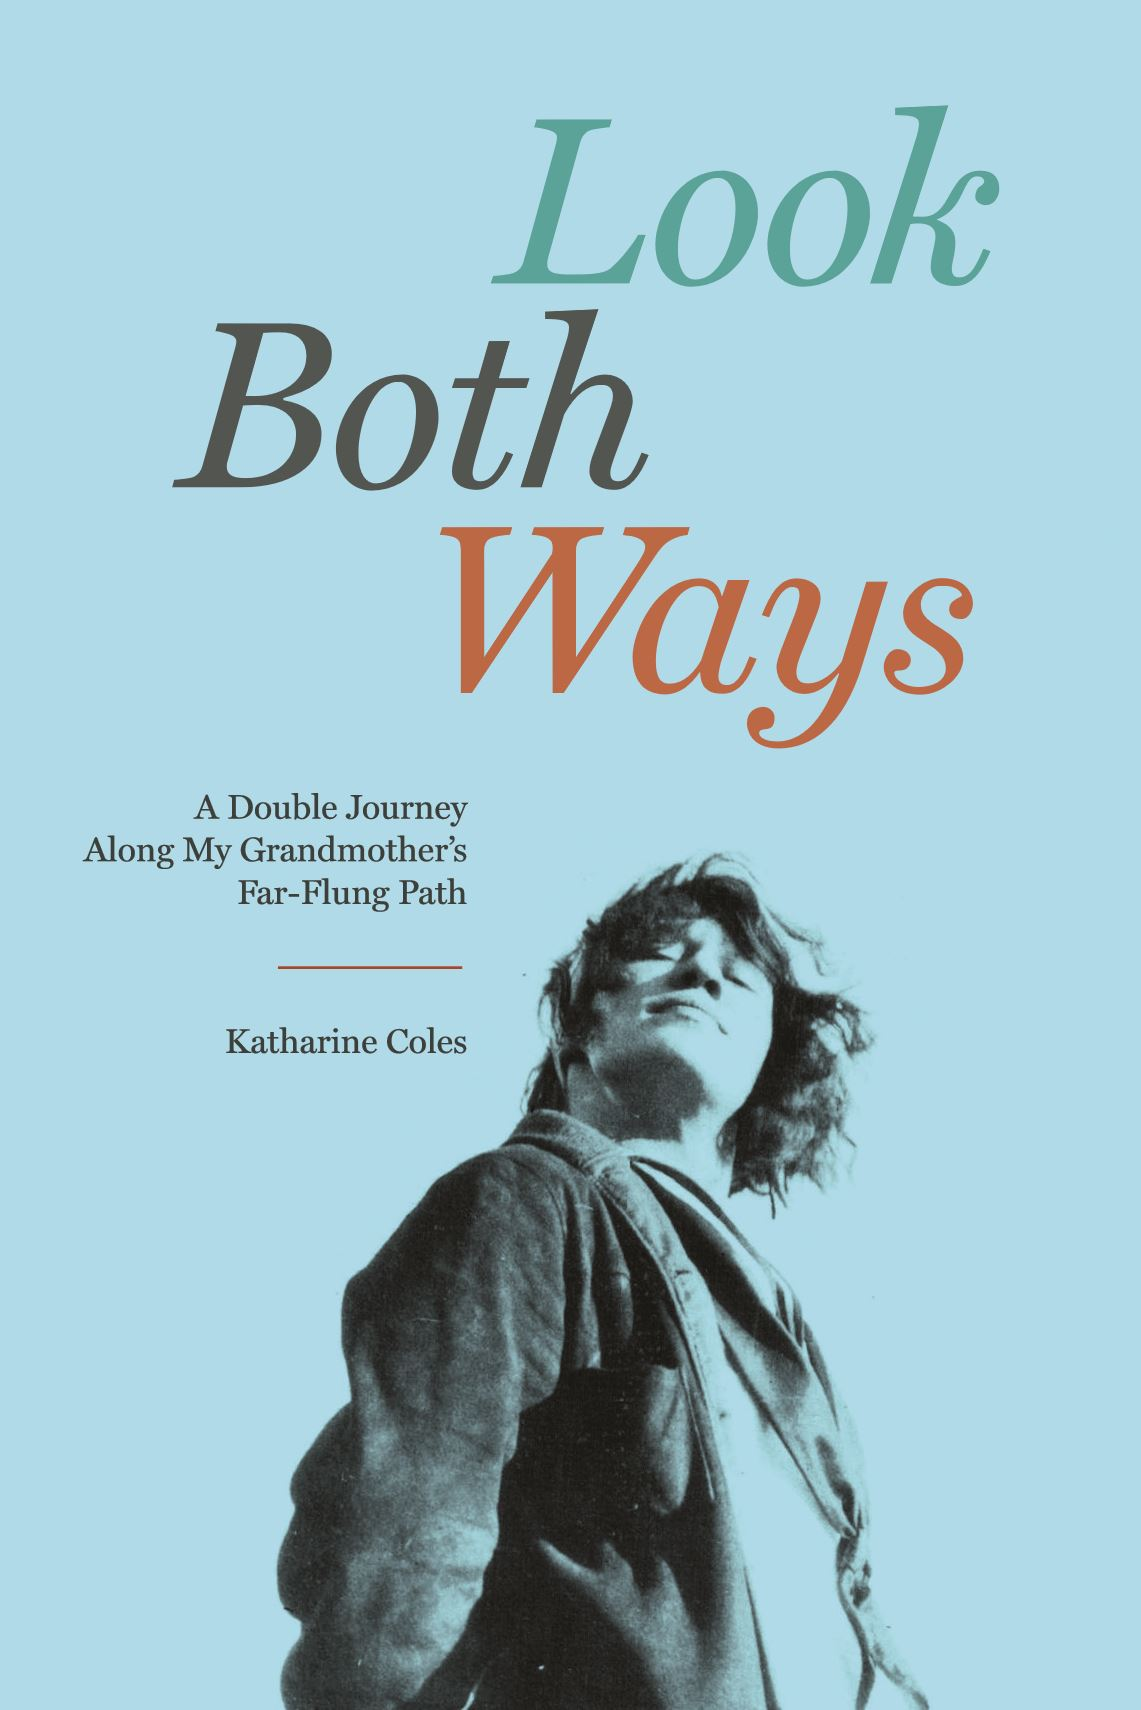 Look Both Ways by Katharine Coles